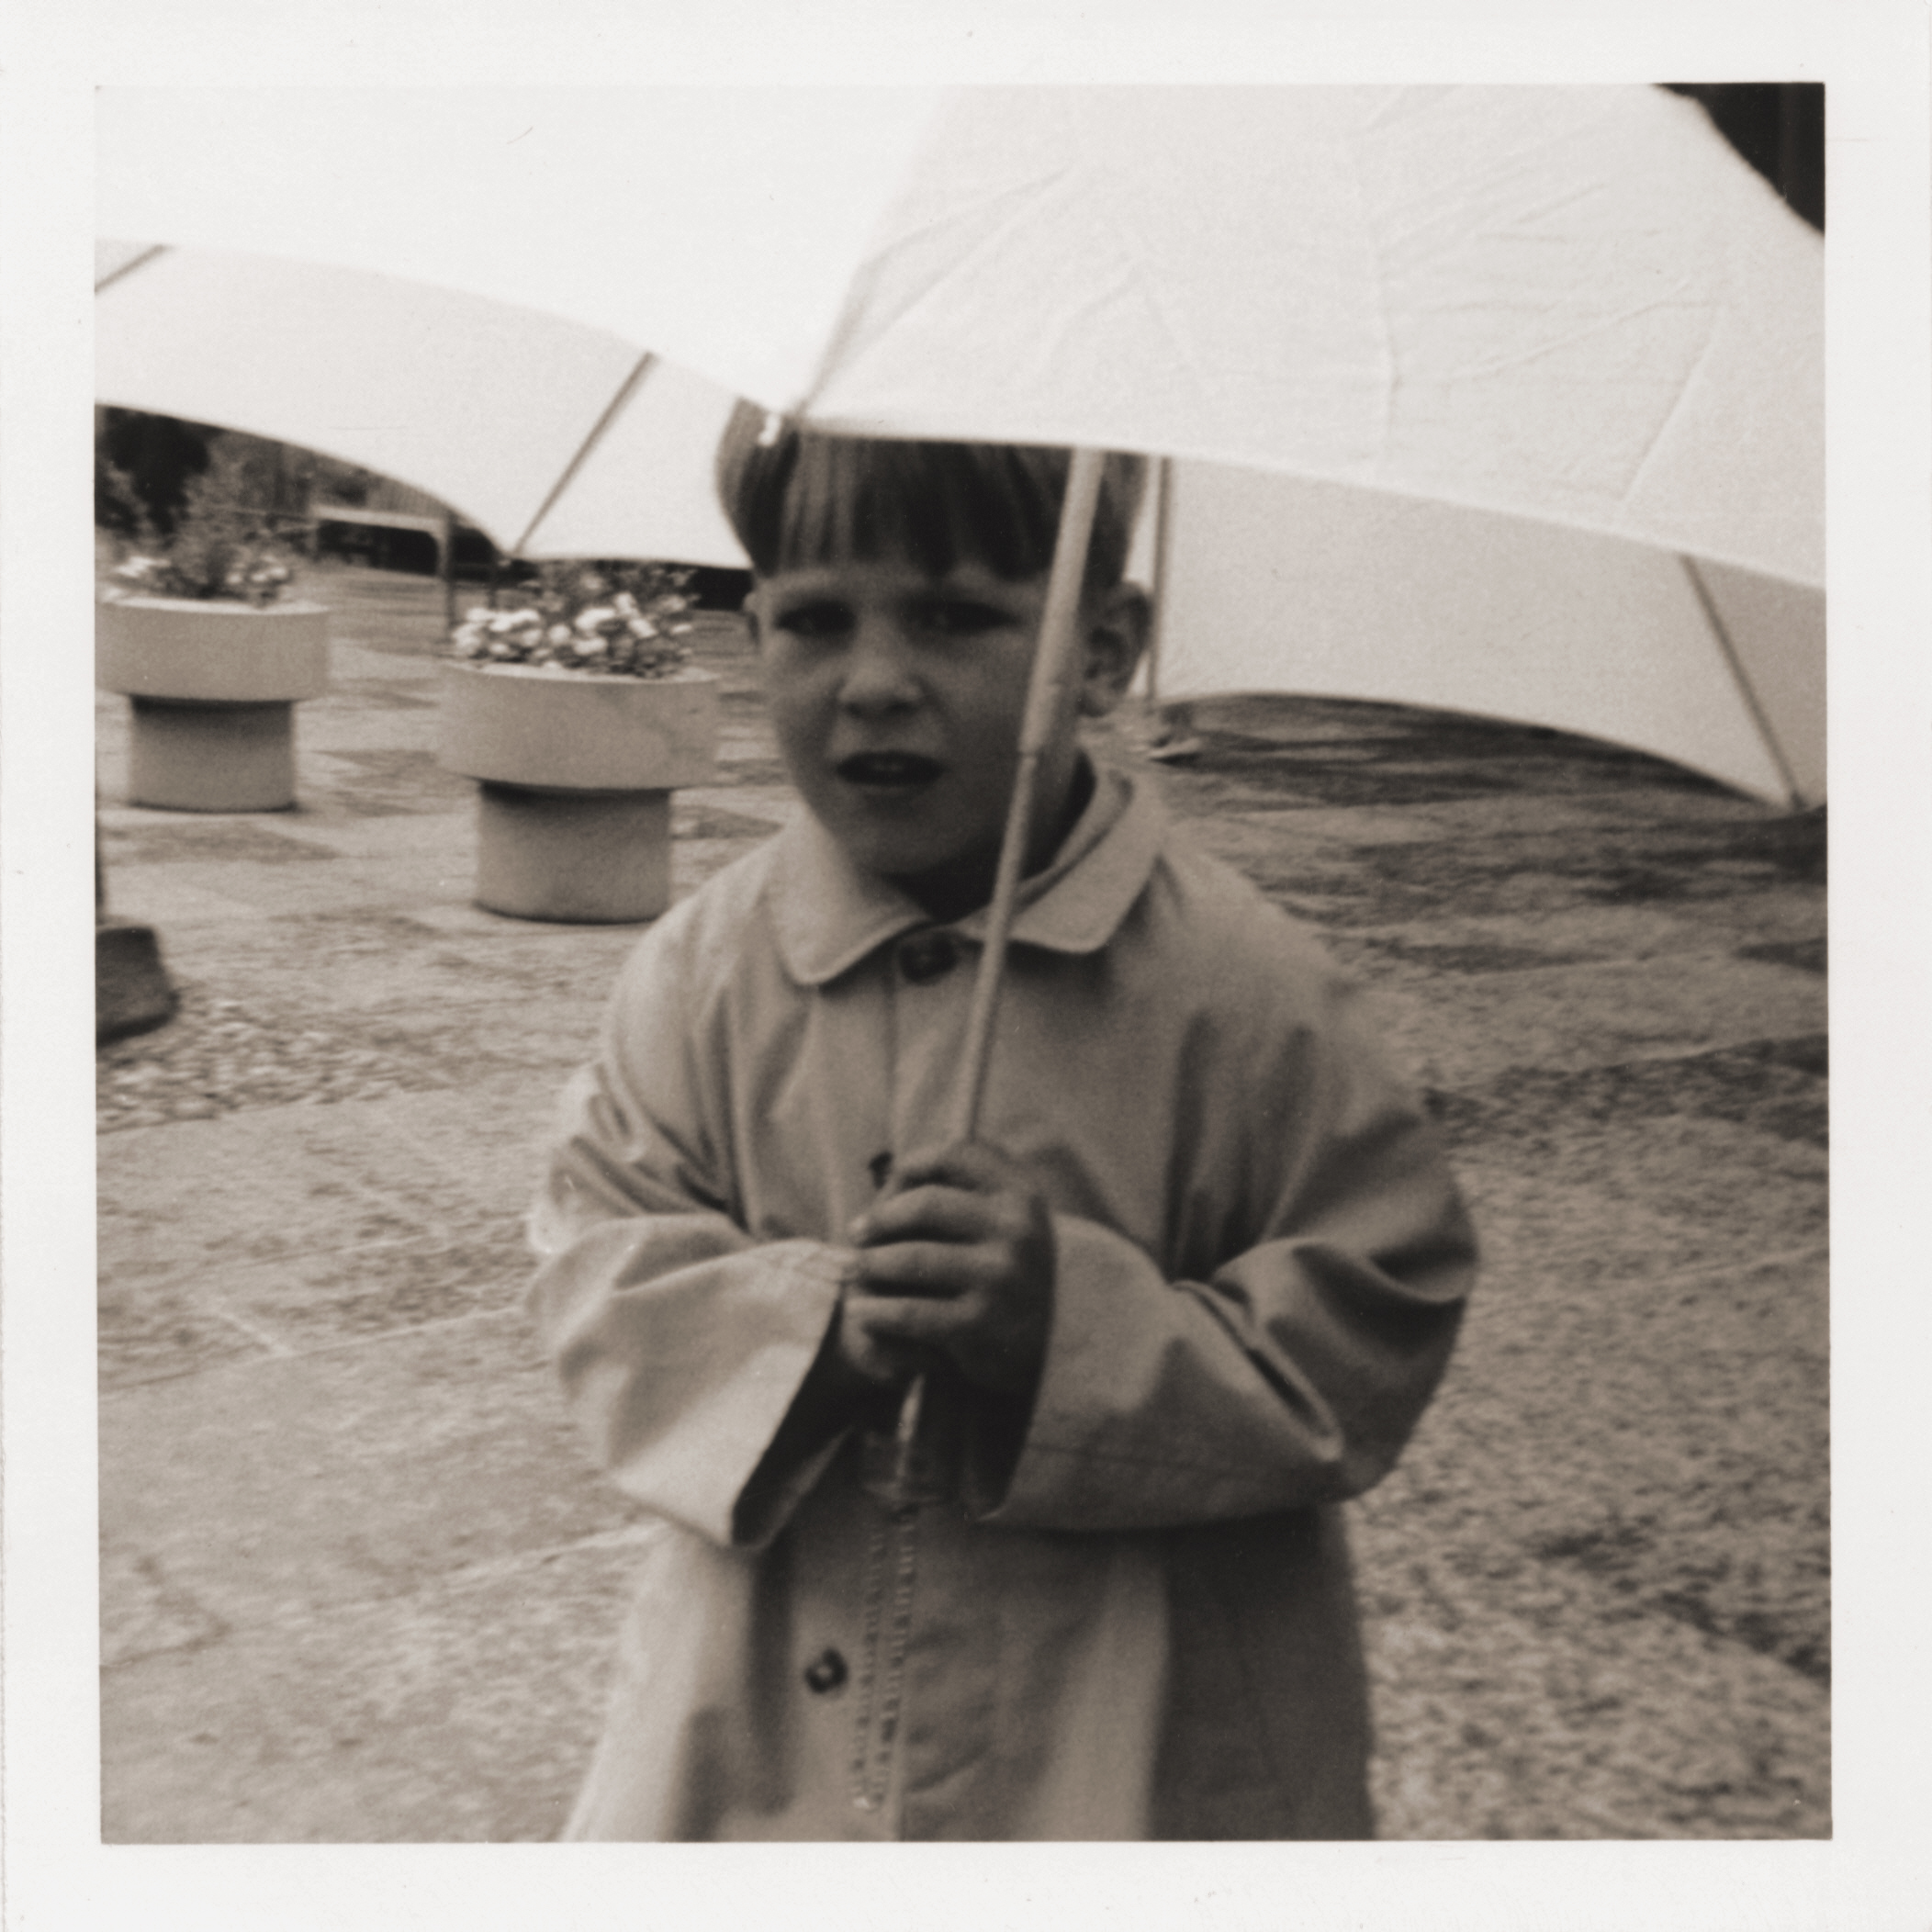 Black and white snapshot of a small boy holding a white umbrella, with pavement and flower pots behind him.